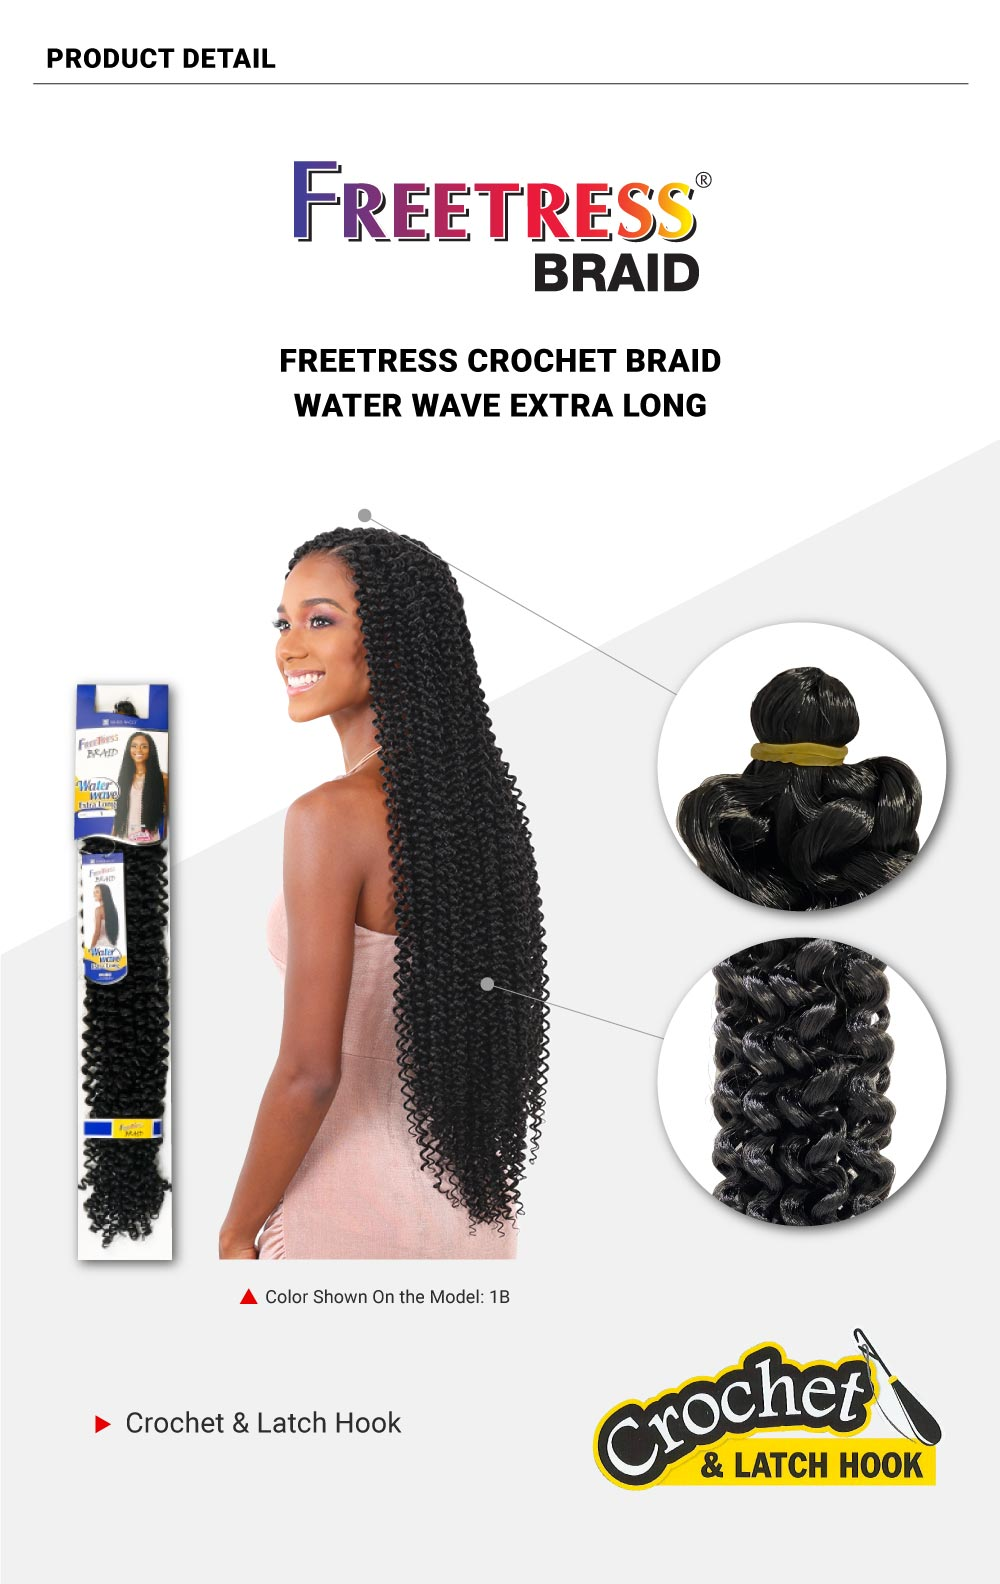 Freetress-Crochet-Braids-Water-Wave-Extra-Long